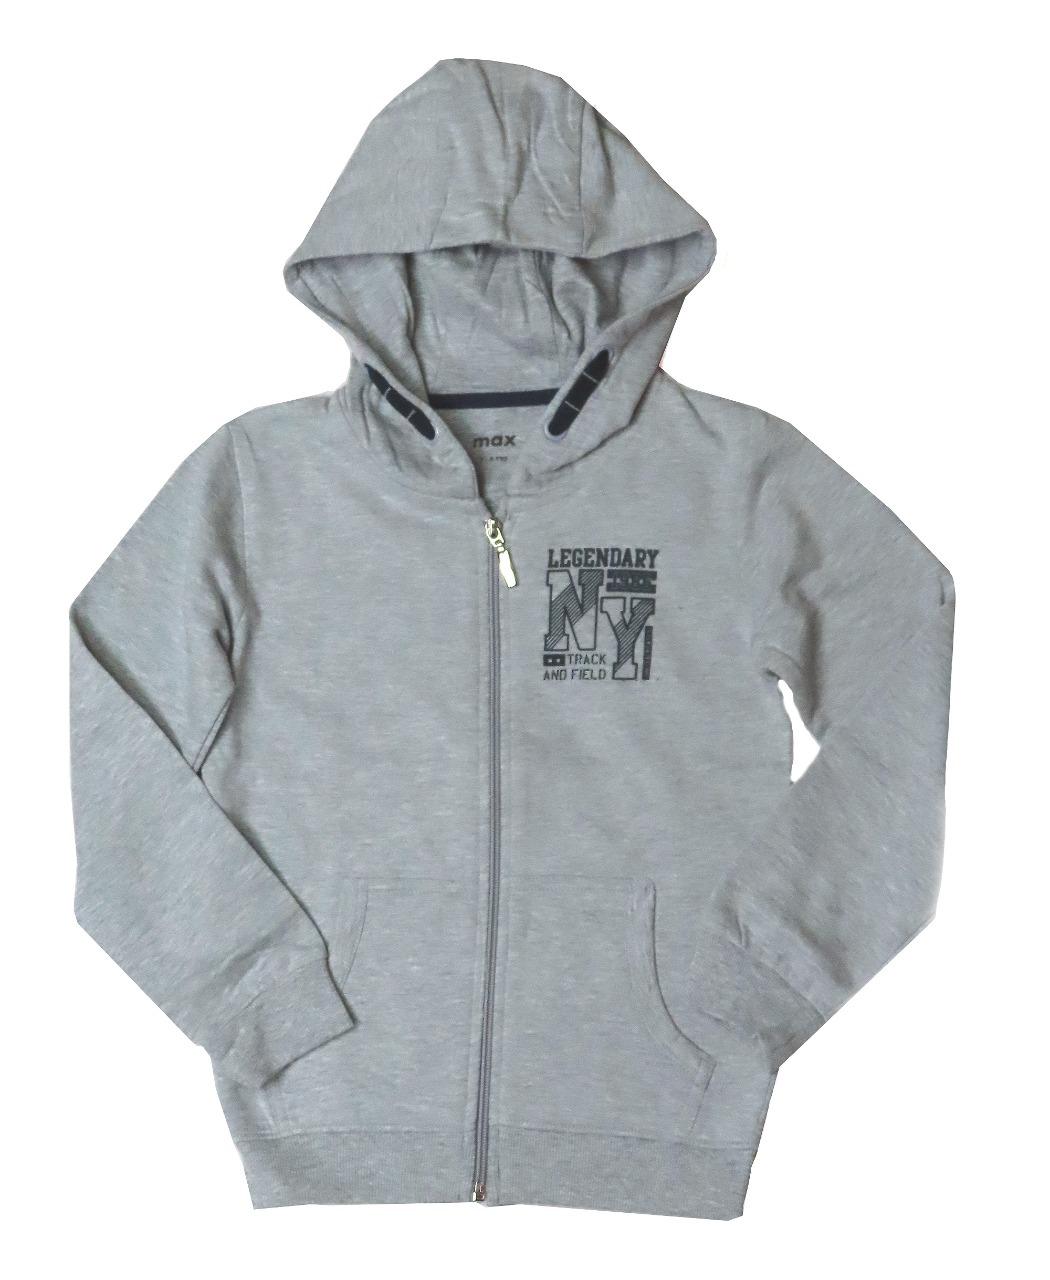 Boys Full Zipper Sweatshirt With Hoodie